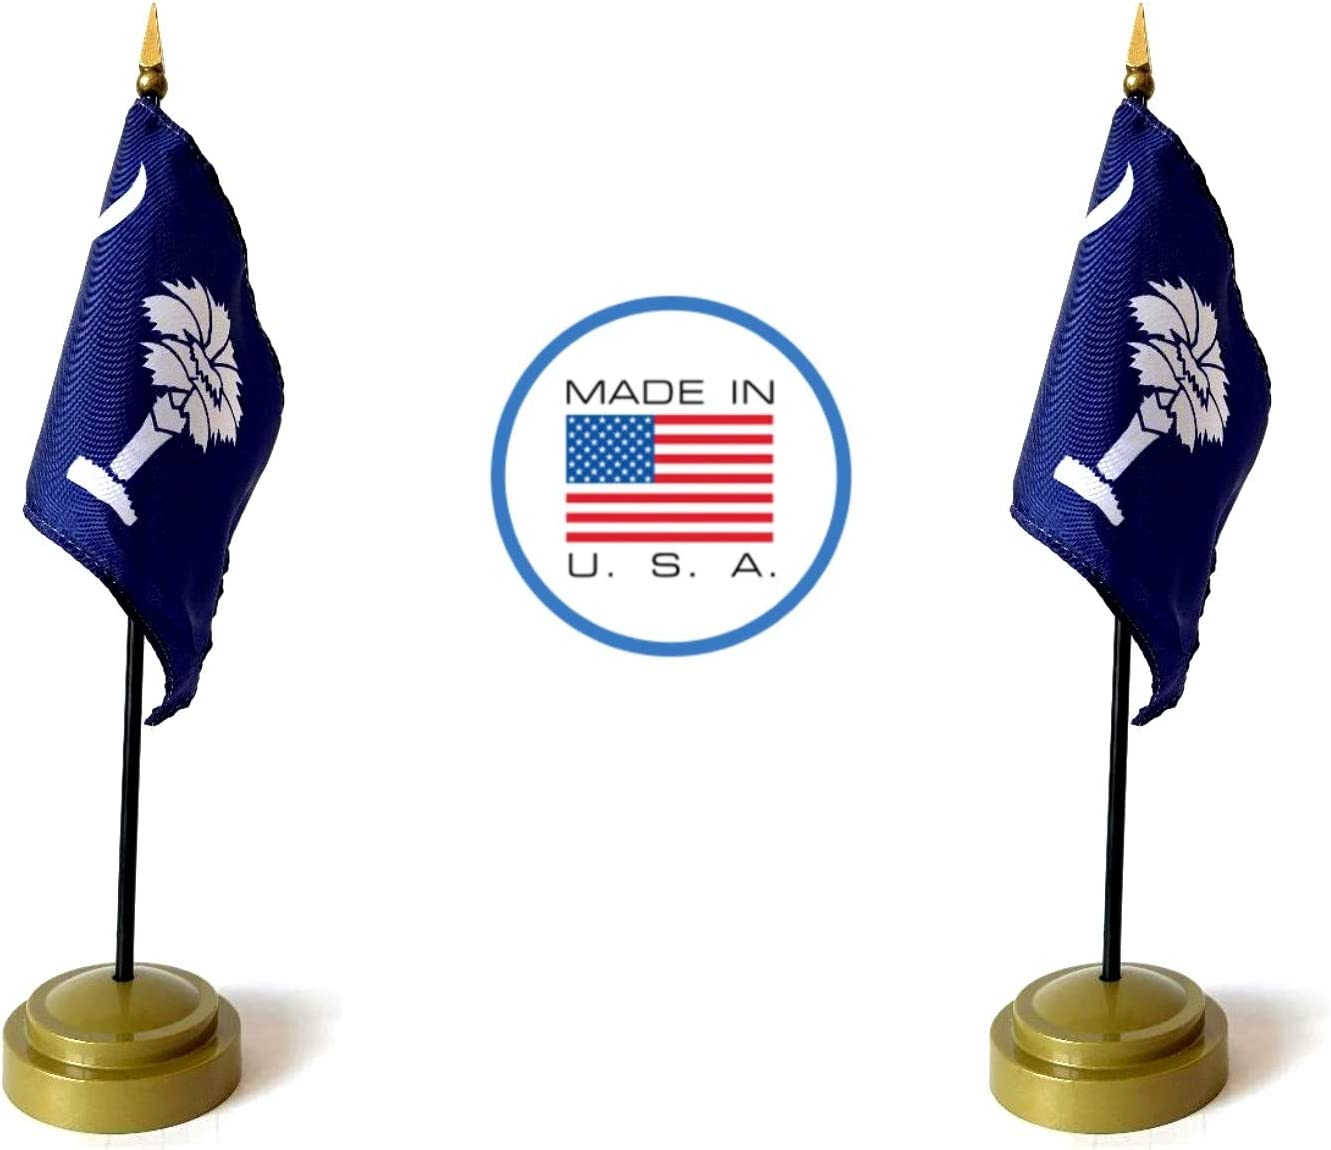 2 South Carolina Rayon 4x6 Miniature Office Desk /& Little Hand Waving Table Flags Includes 2 Bronze Flag Stands /& 2 Small Mini South Carolina Stick Flags Made in The USA Flag Set